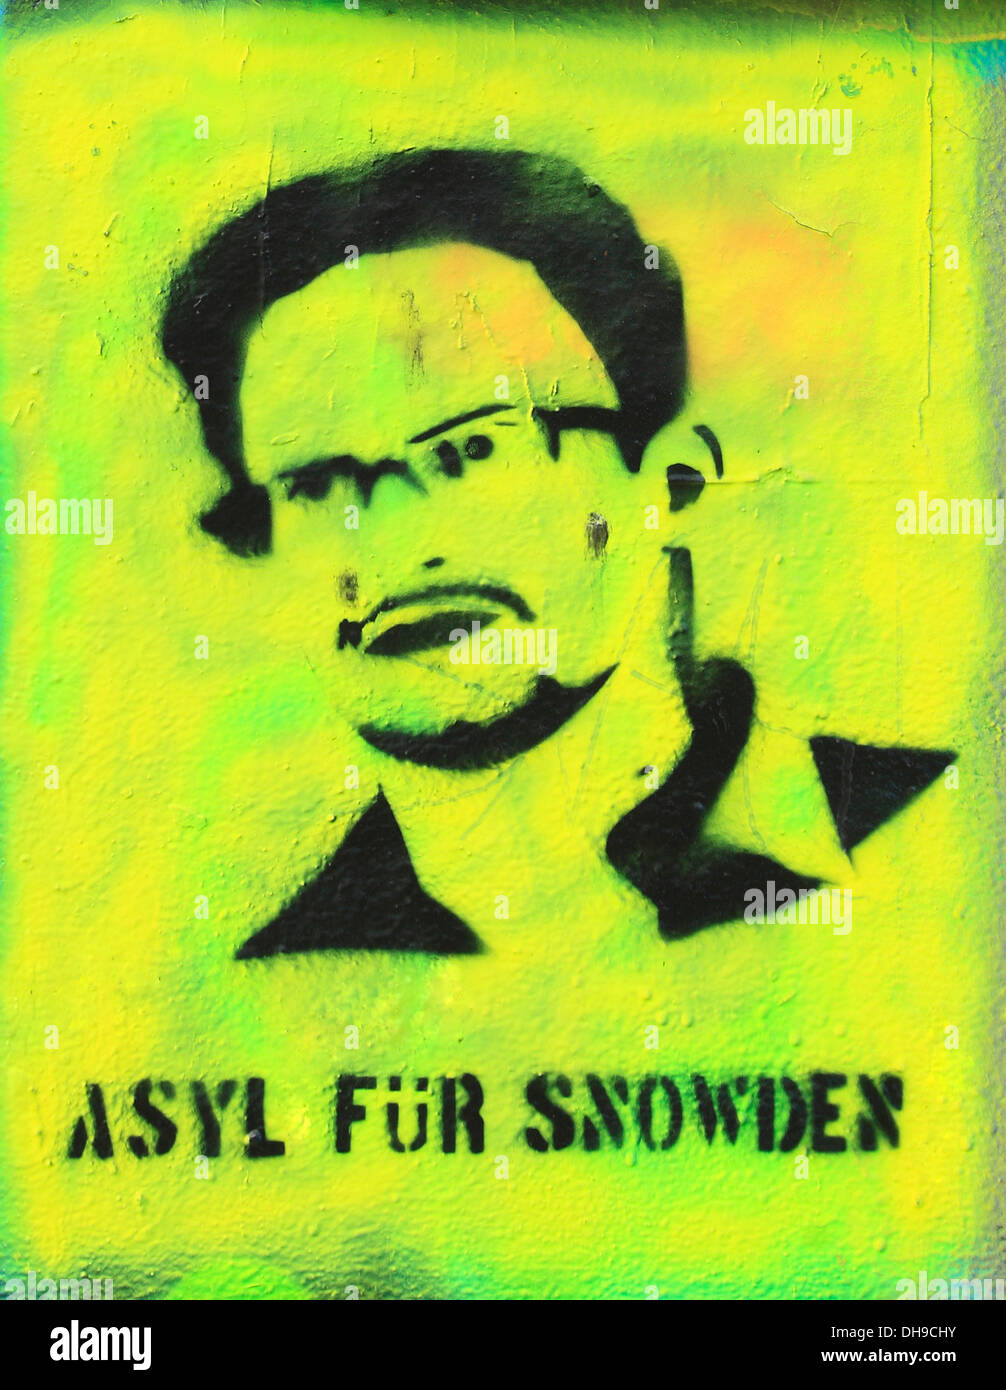 Asyl fuer Snowden, Graffiti at East-Side-Gallery, Berlin, Germany - Stock Image